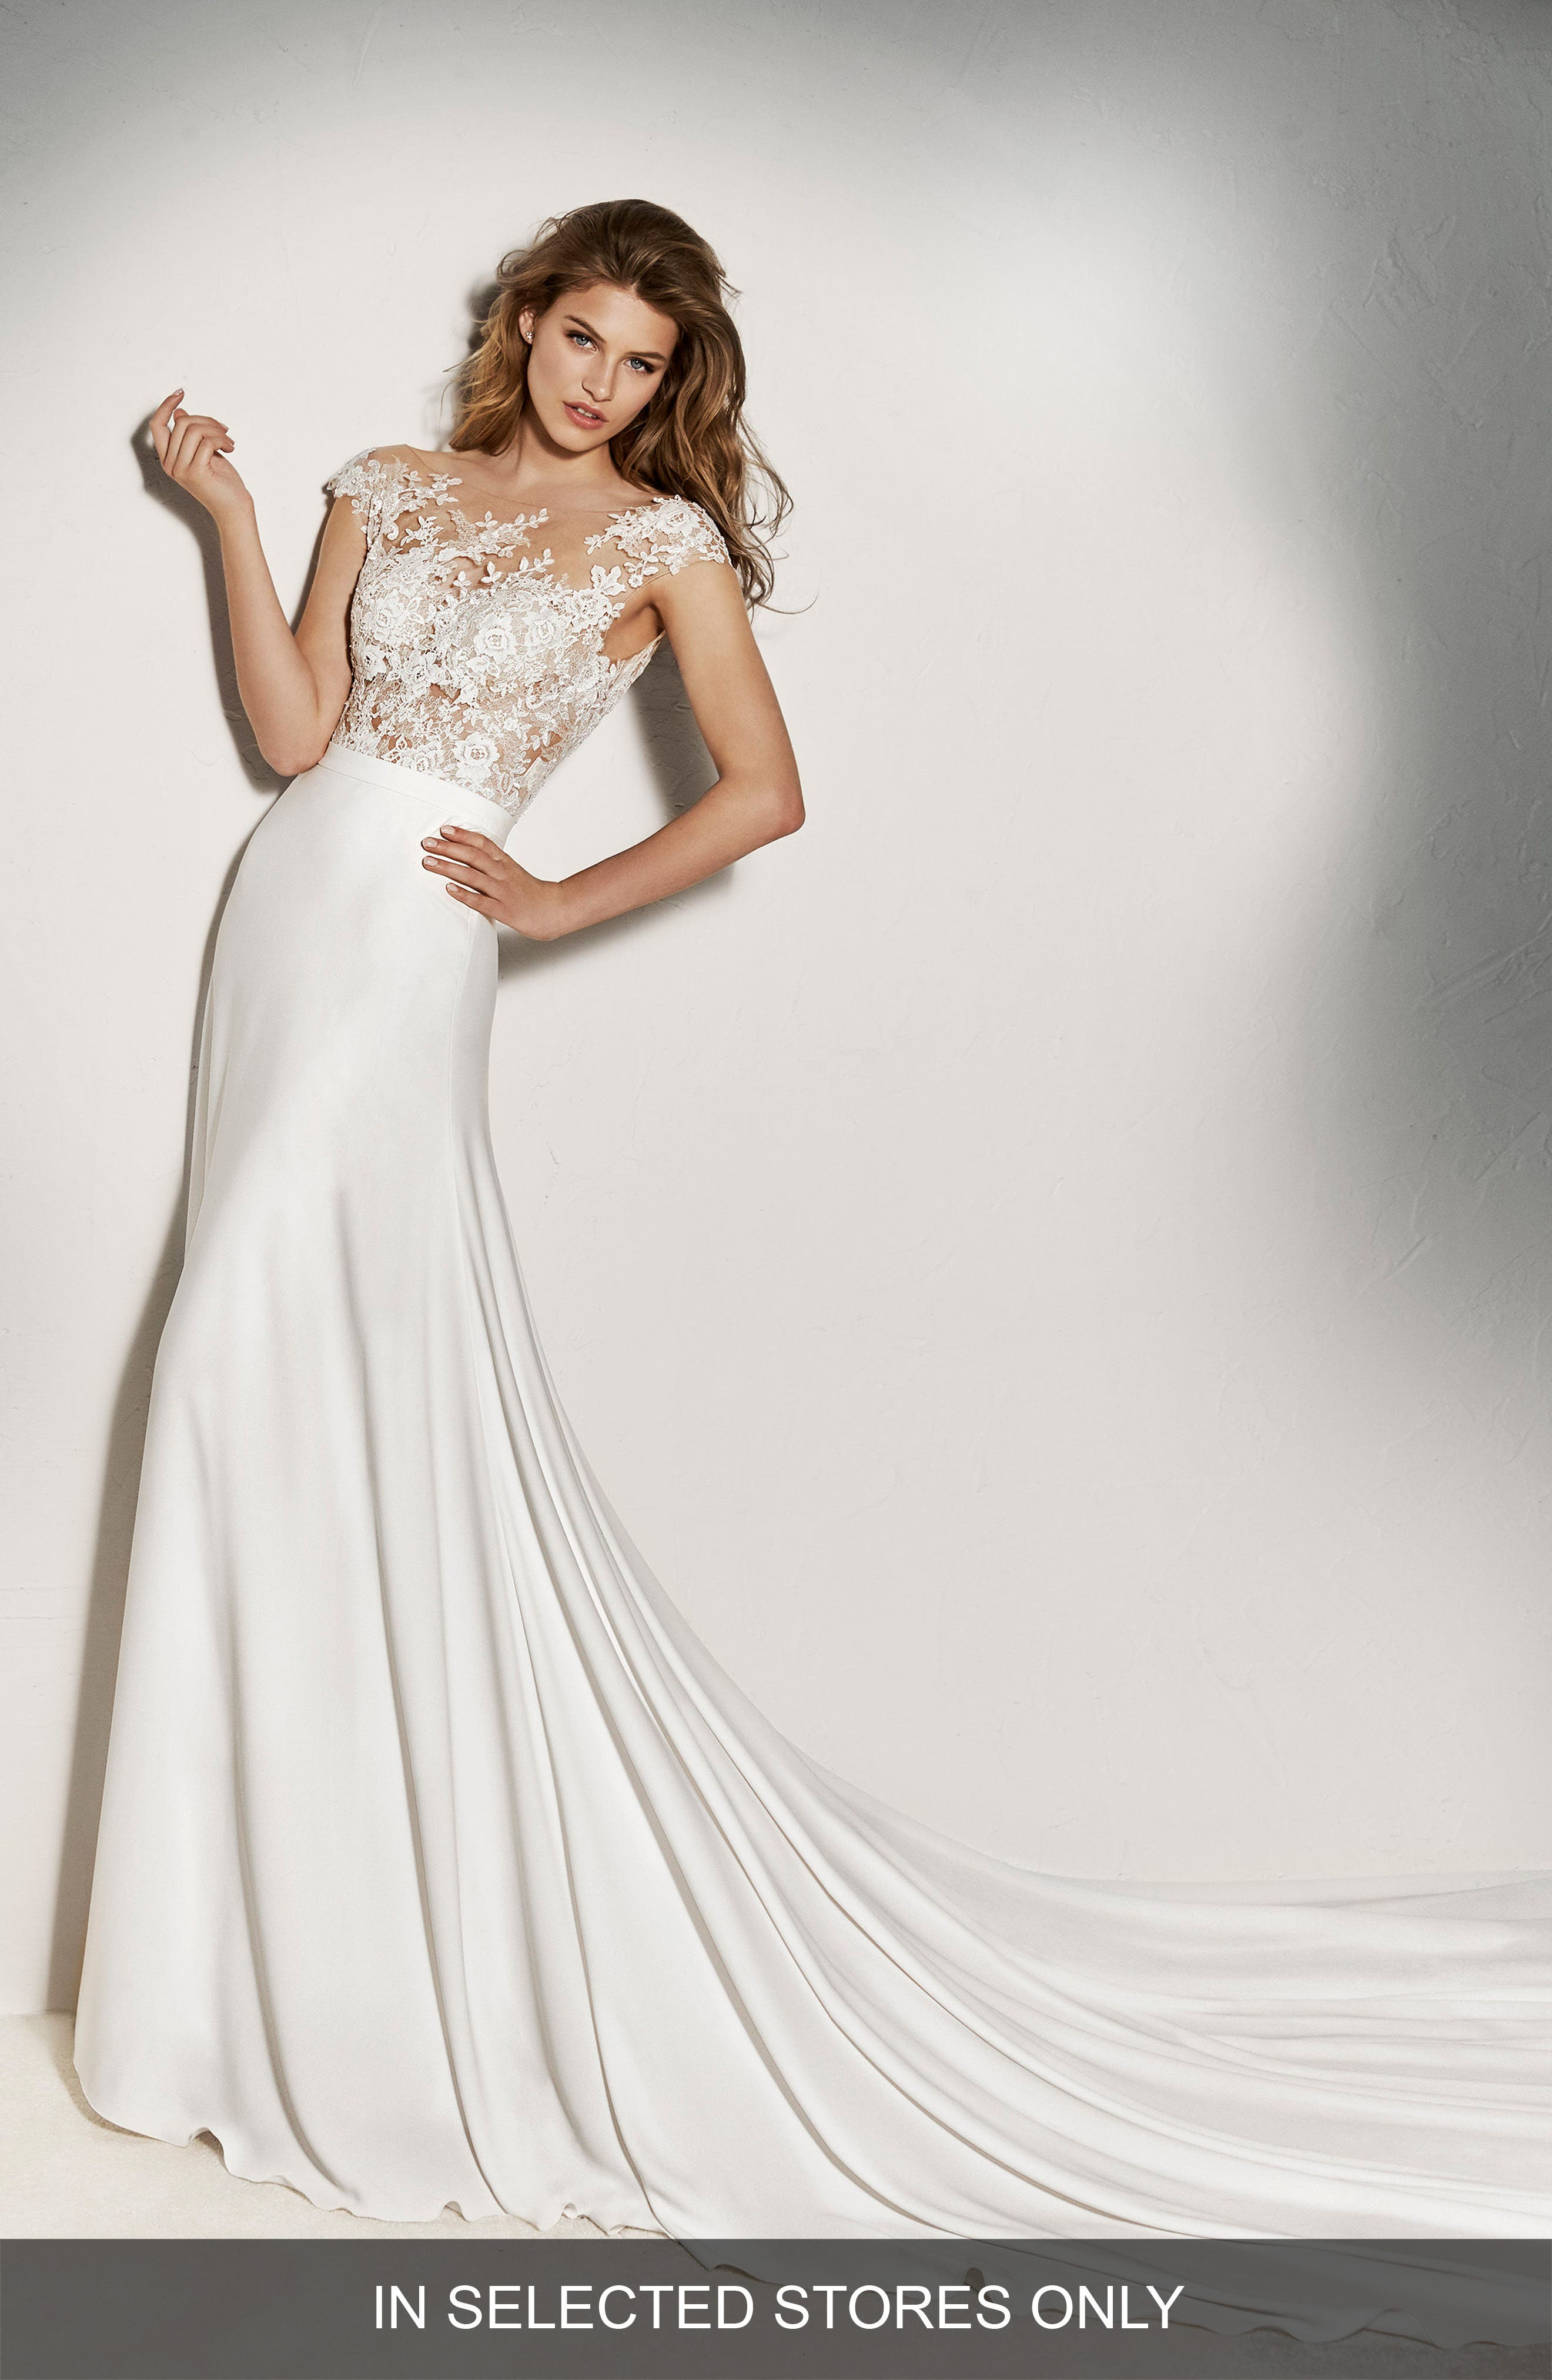 Pronovias Xenine Off the Shoulder Illusion A-Line Gown (In Selected Stores Only)